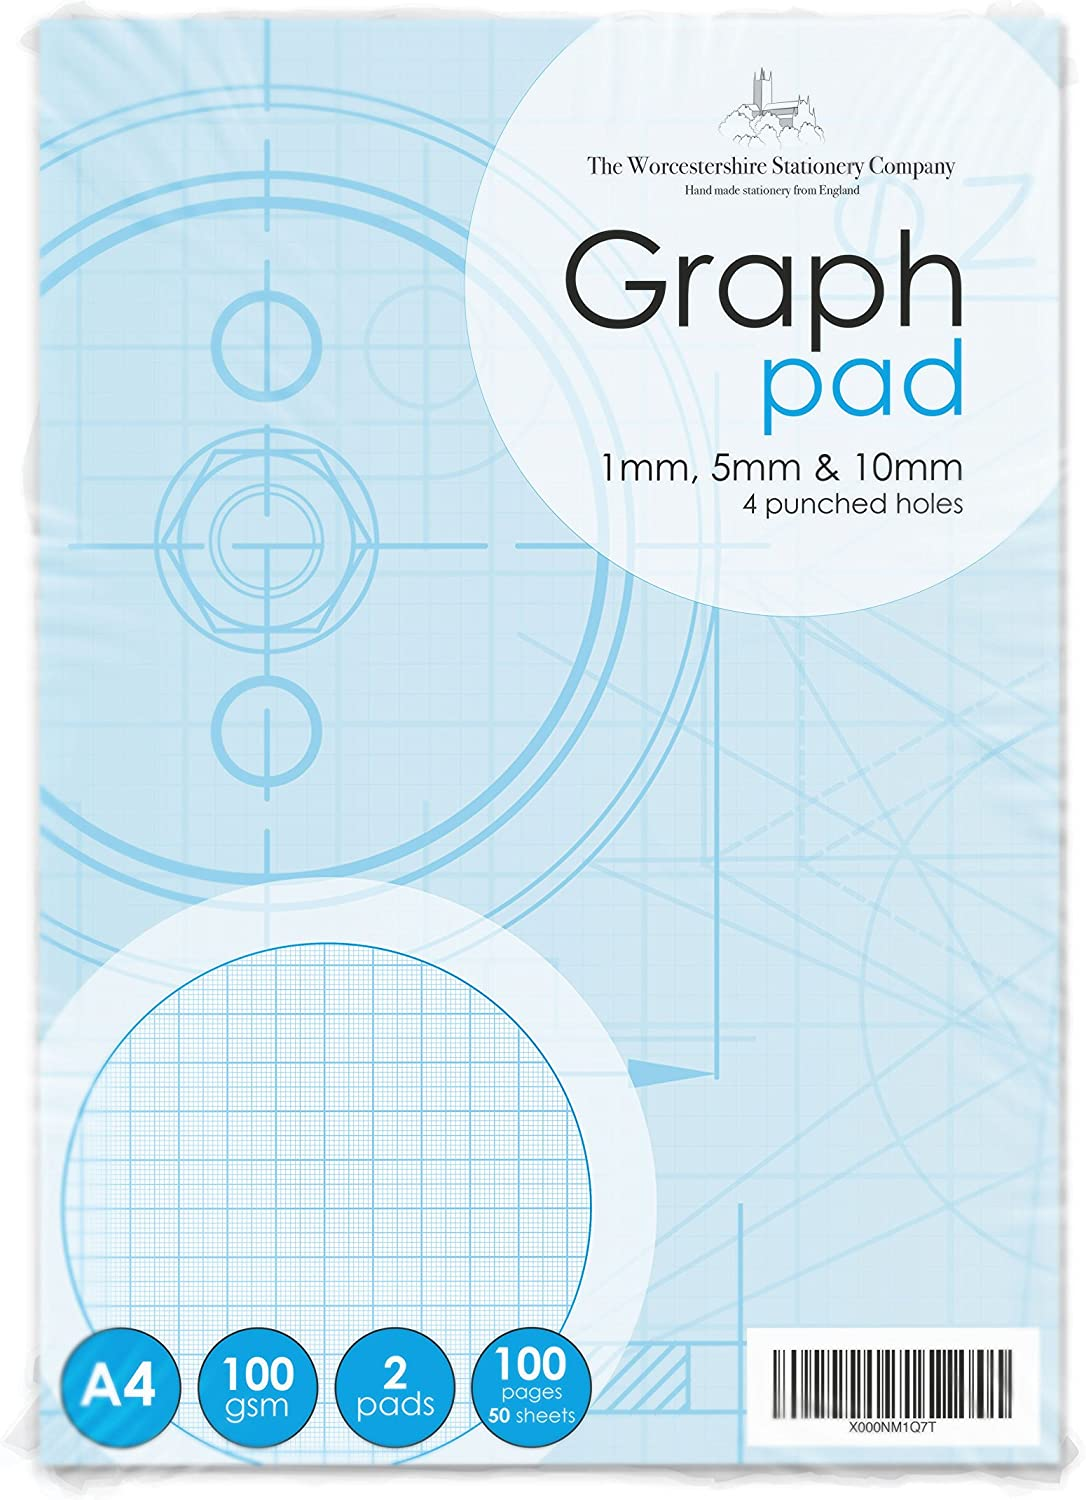 A4 Tracing Paper Pad Drafting Paper Tracking 40 Sheets Home School Office Use UK